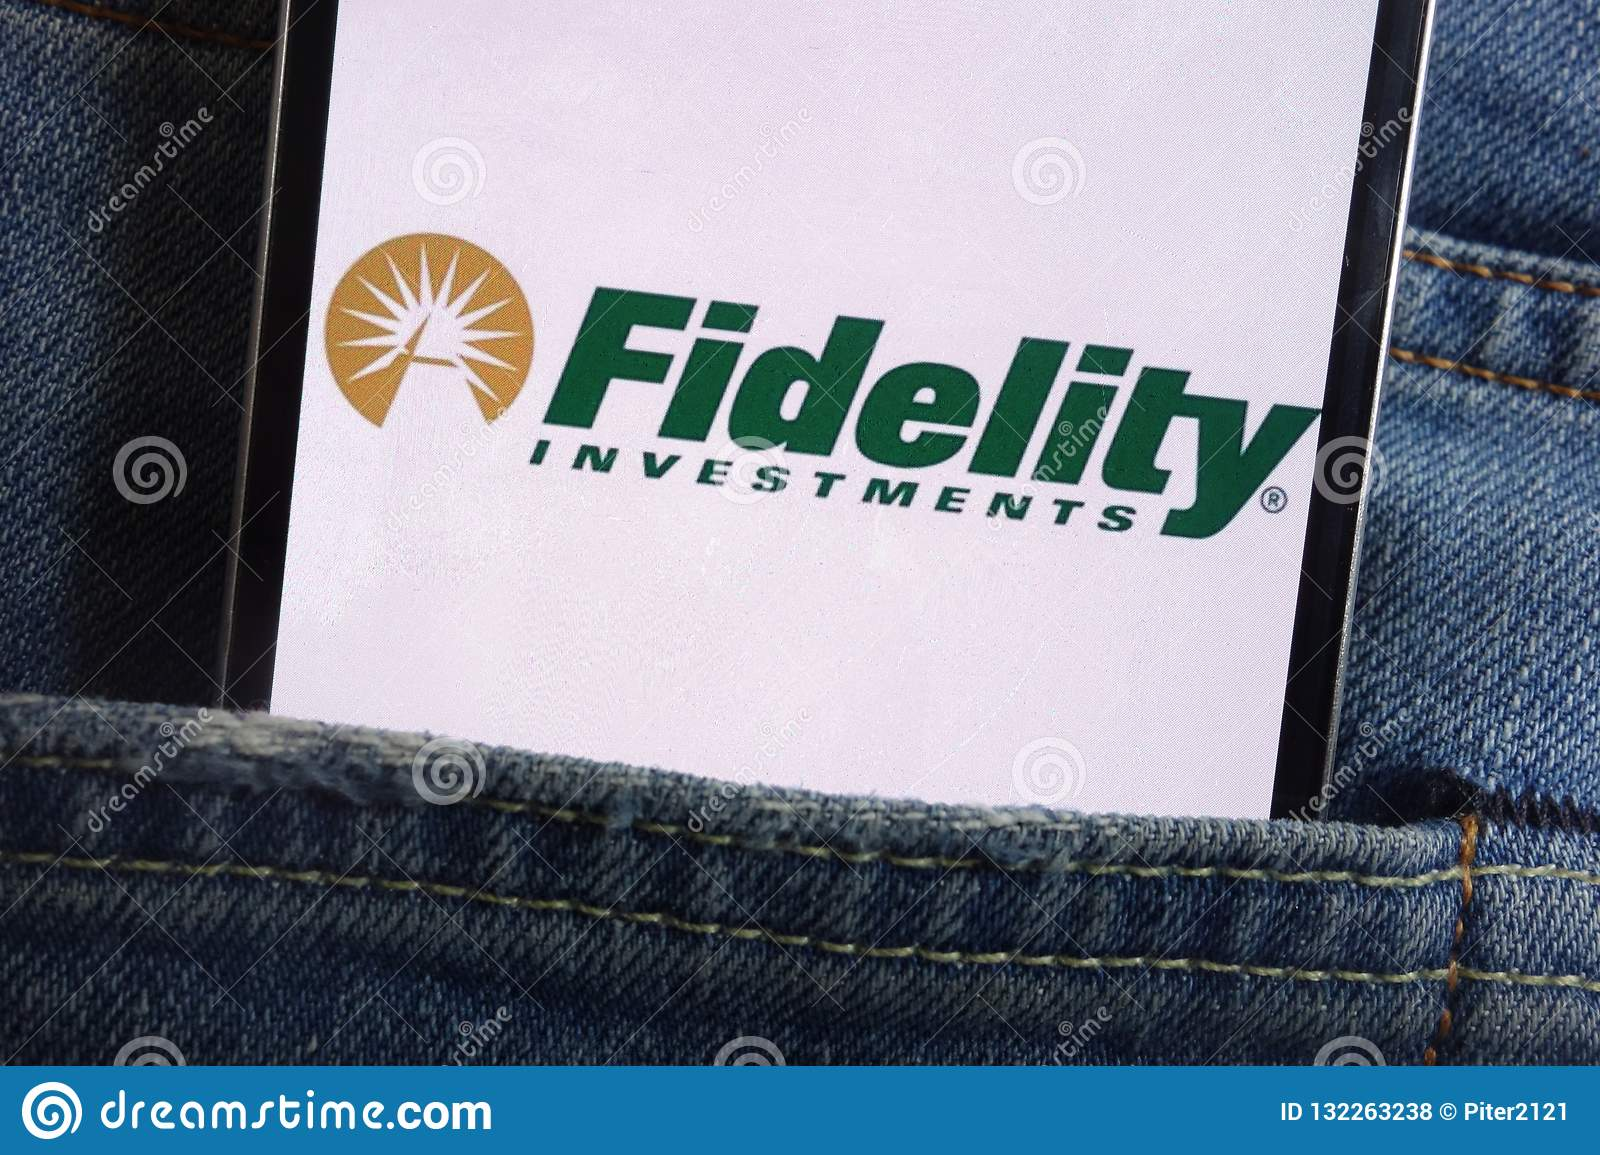 Fidelity Investments Logo Displayed On Smartphone Hidden In